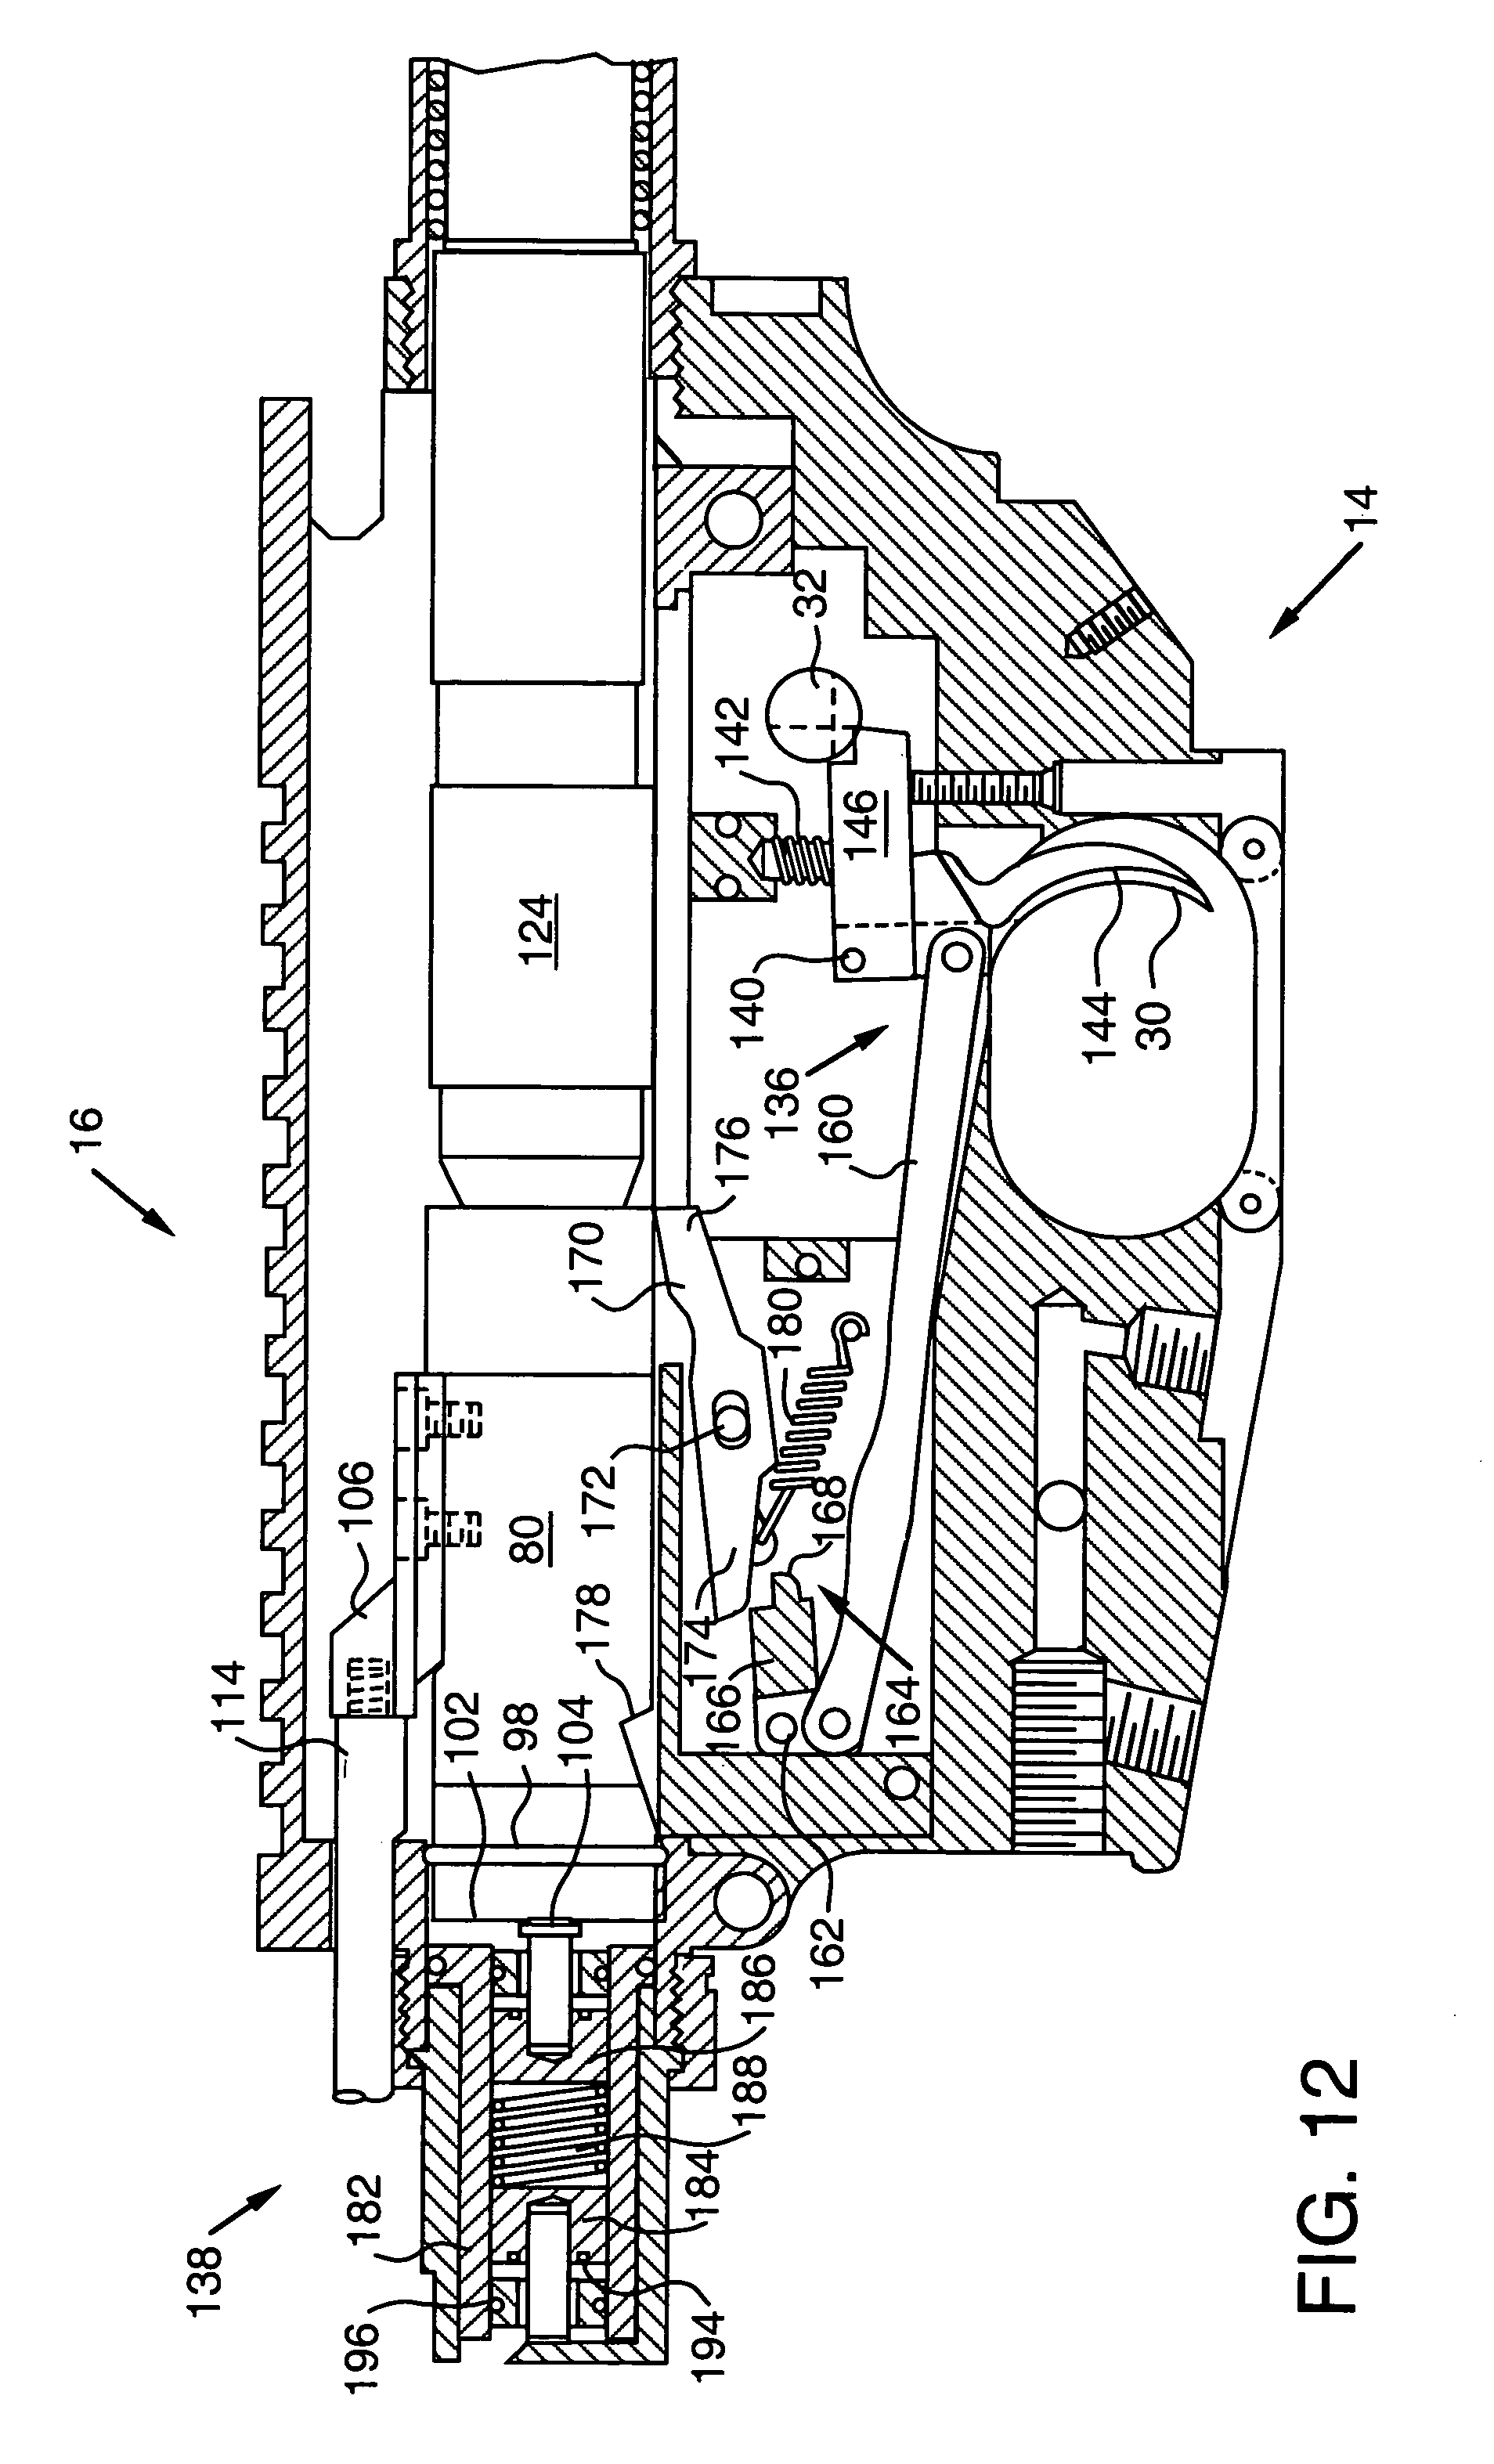 Patent Us7581954 Firearms Training Simulator Simulating The Recoil Tippmann Model 98 Schematic Drawing